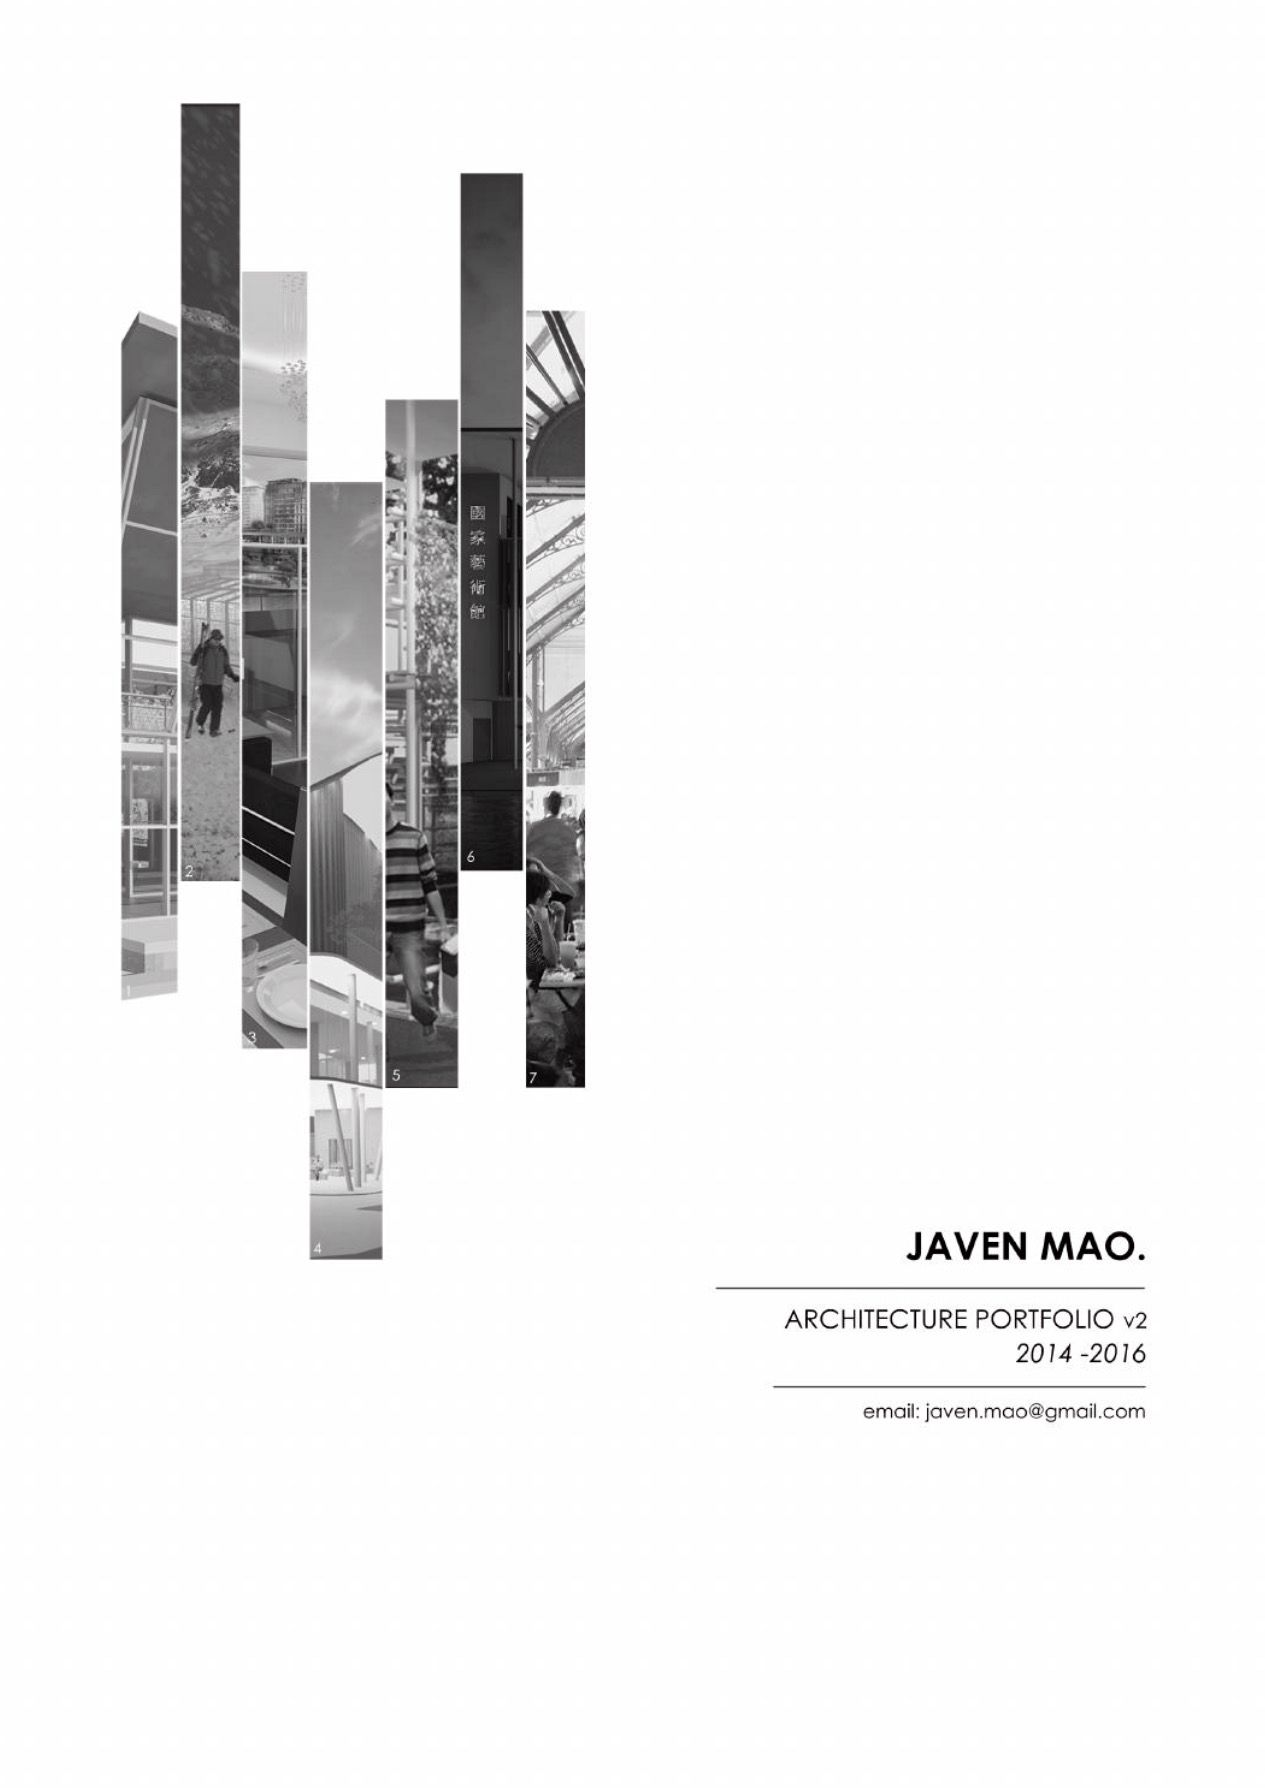 Javen mao architecture portfolio pinteres for Architecture graphique